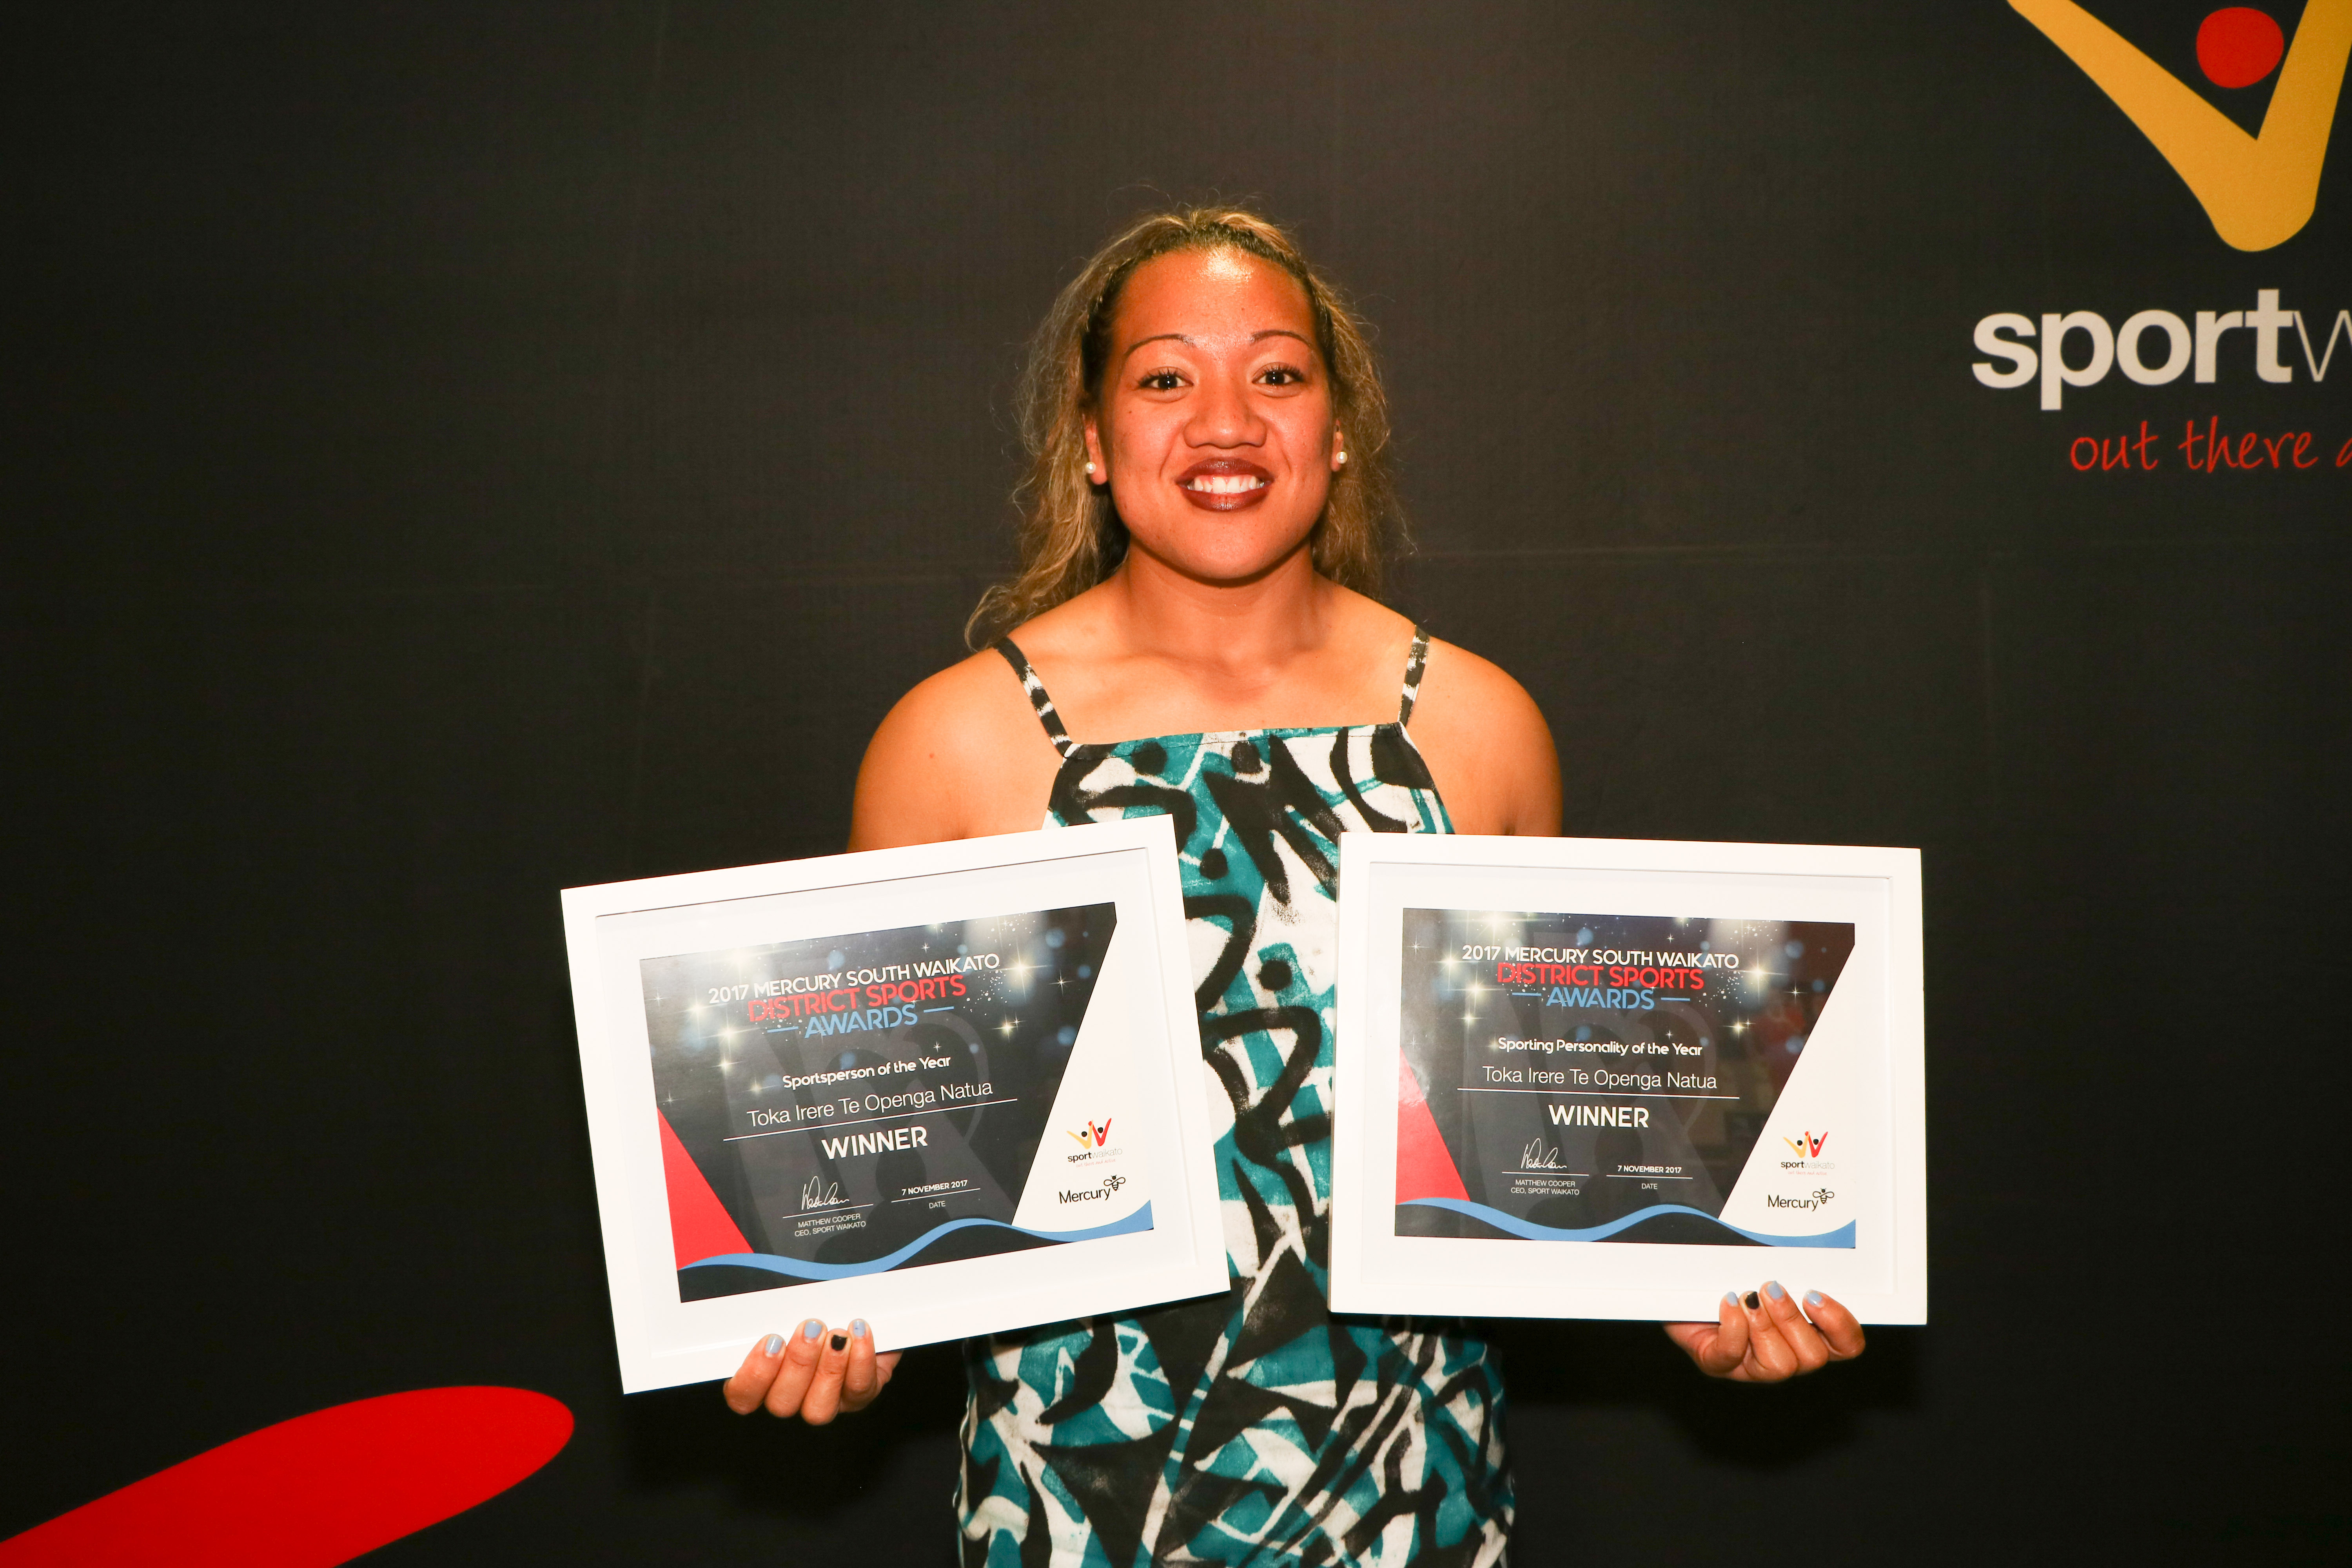 Toka Irere Te Openga Natua takes out two titles at the Mercury South Waikato District Sports Awards